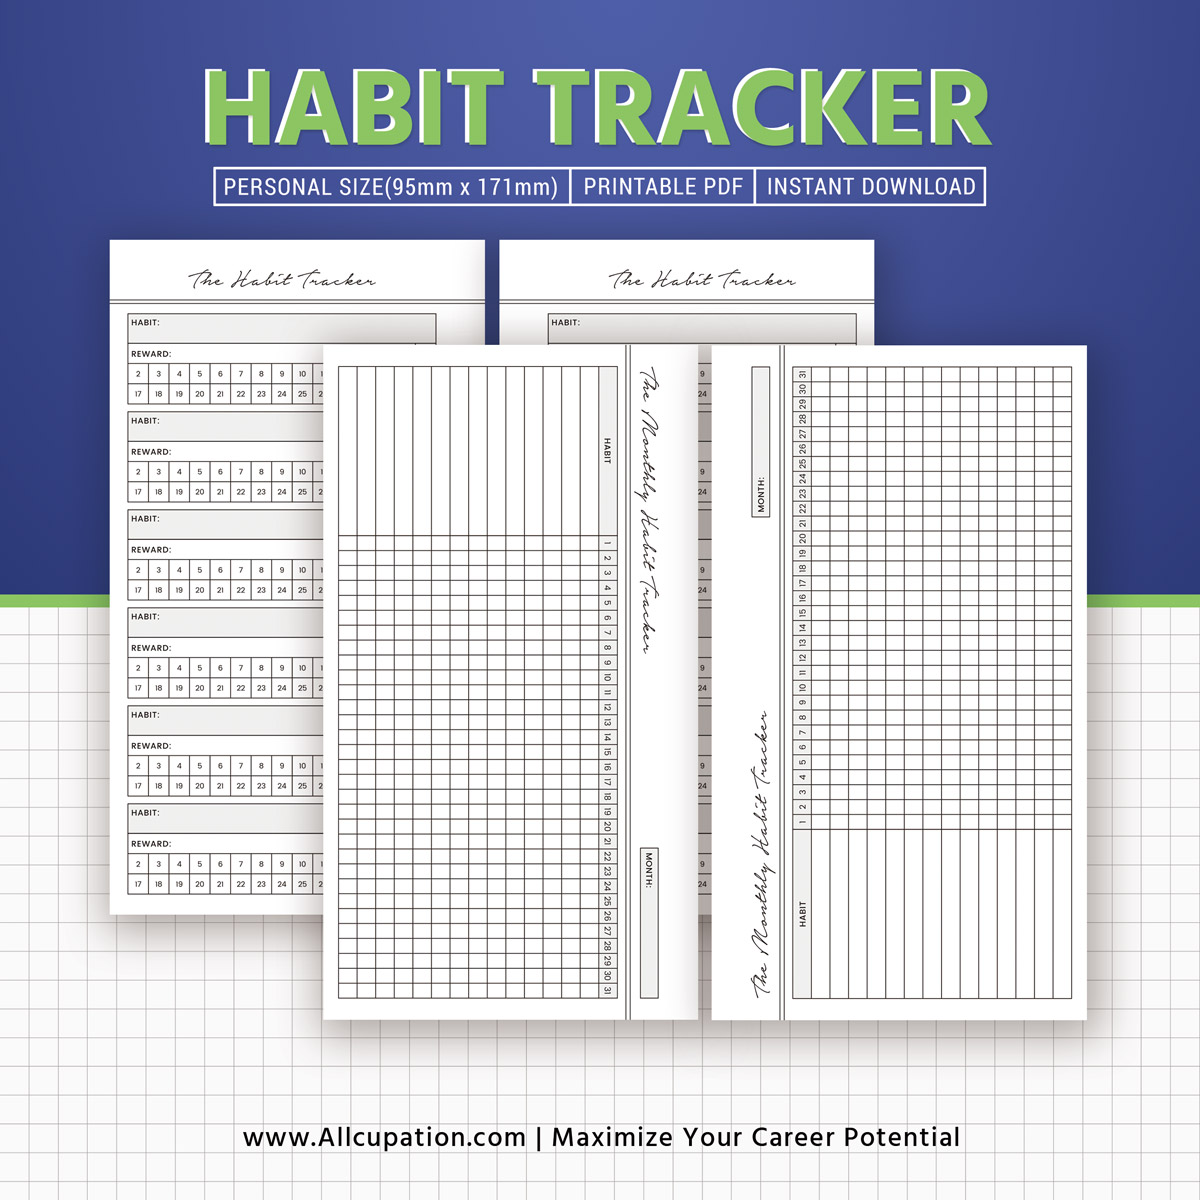 2020 Habit Tracker Monthly Habit Tracker Inserts Habit Planner Planner Design Best Planner Personal Size Printable Planner Planner Pages Filofax Personal Allcupation Optimized Resume Templates For Higher Employability